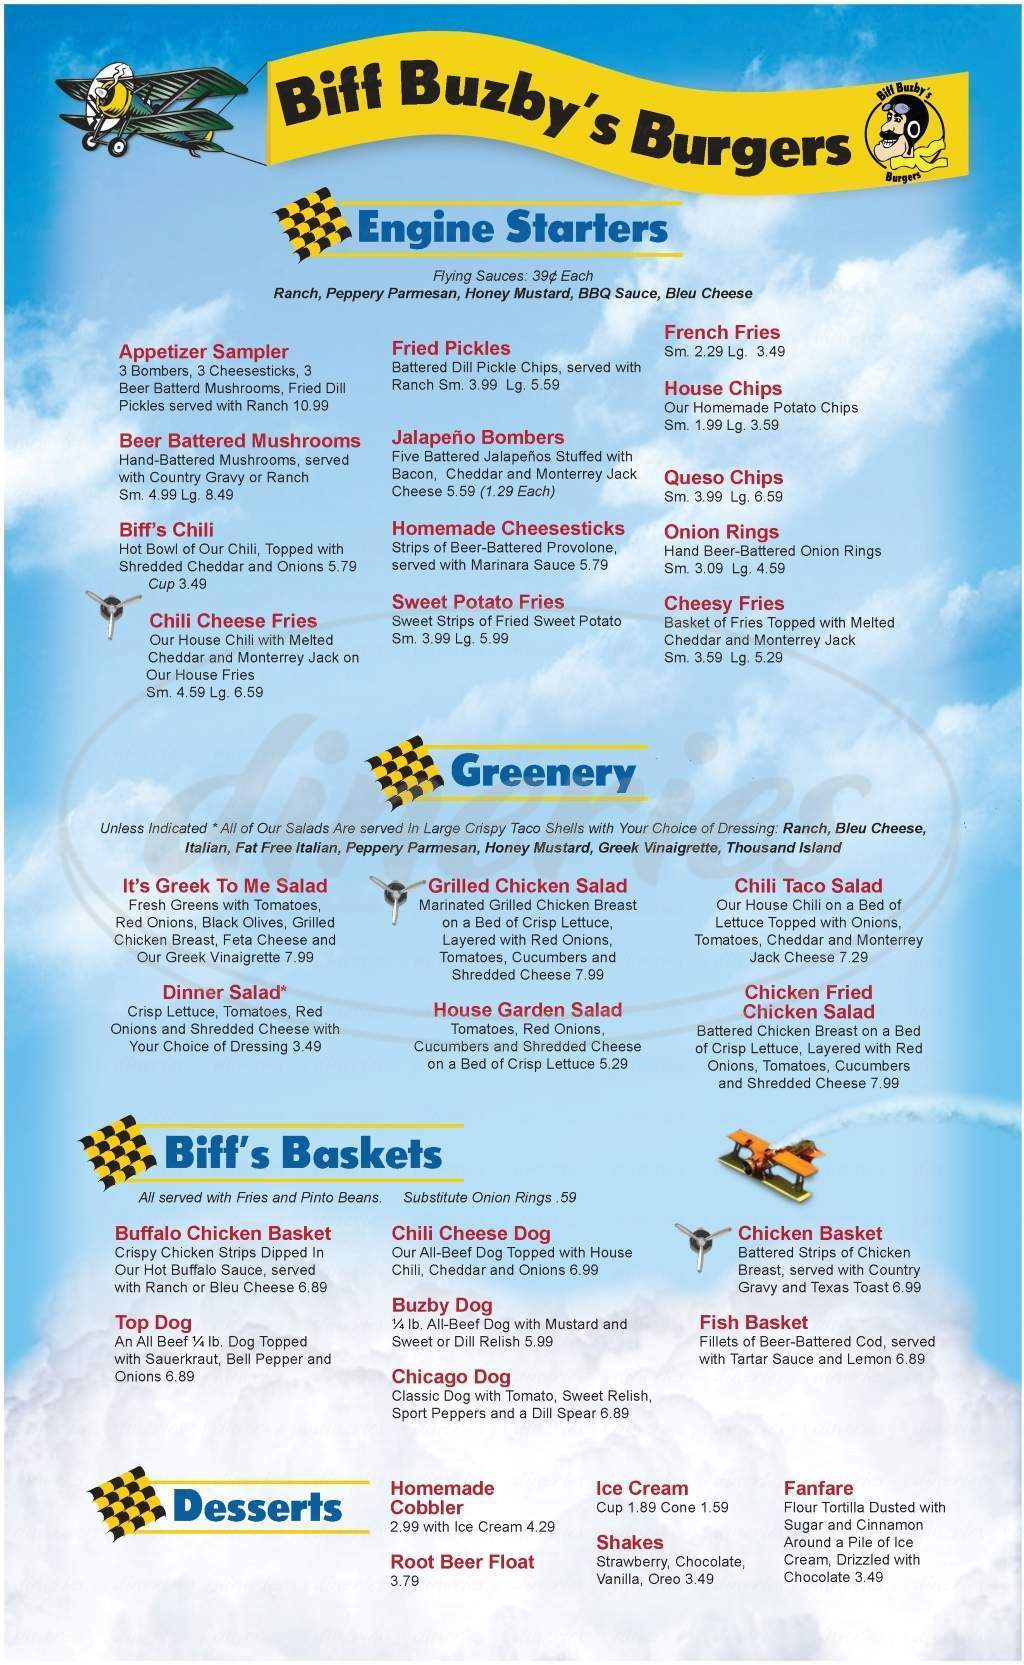 menu for Biff Buzby's Burgers